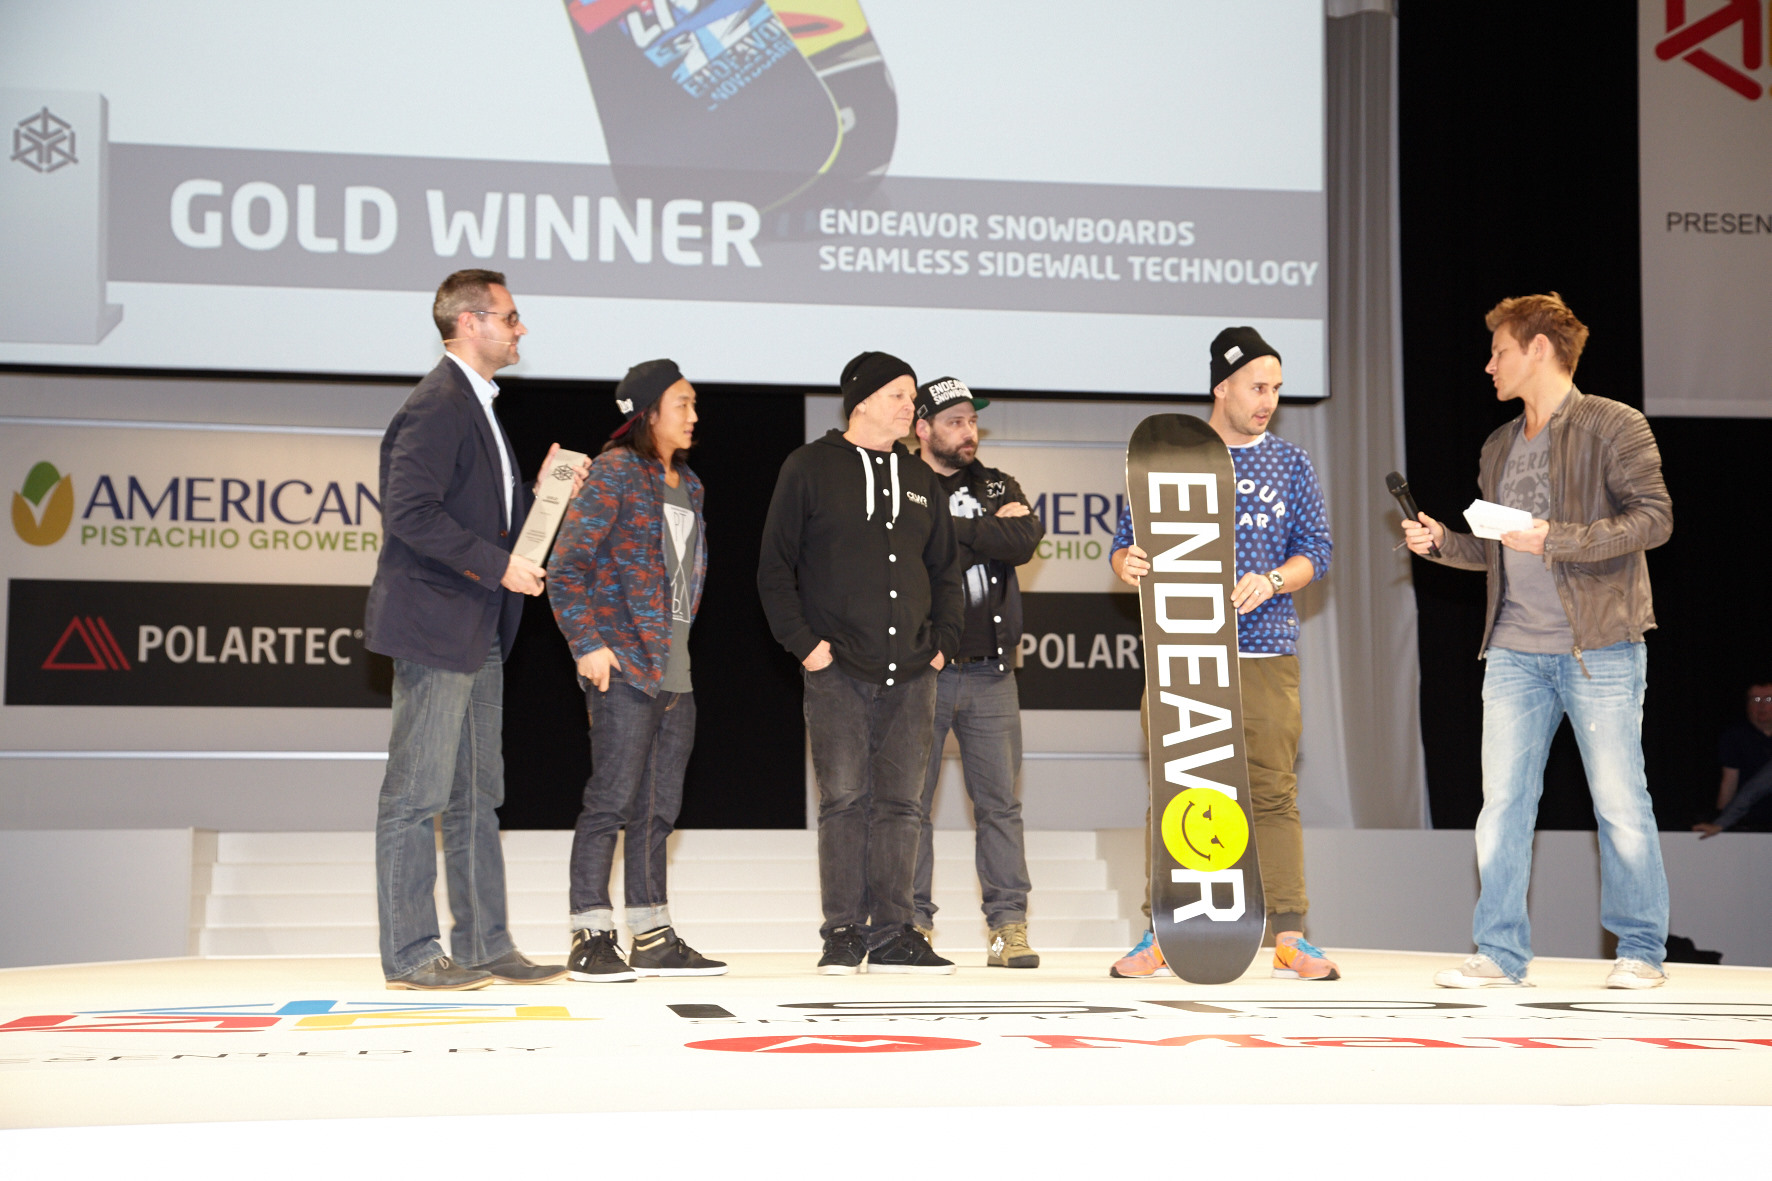 The Endeavor Team Accepting a Gold Award at ISPO 2014